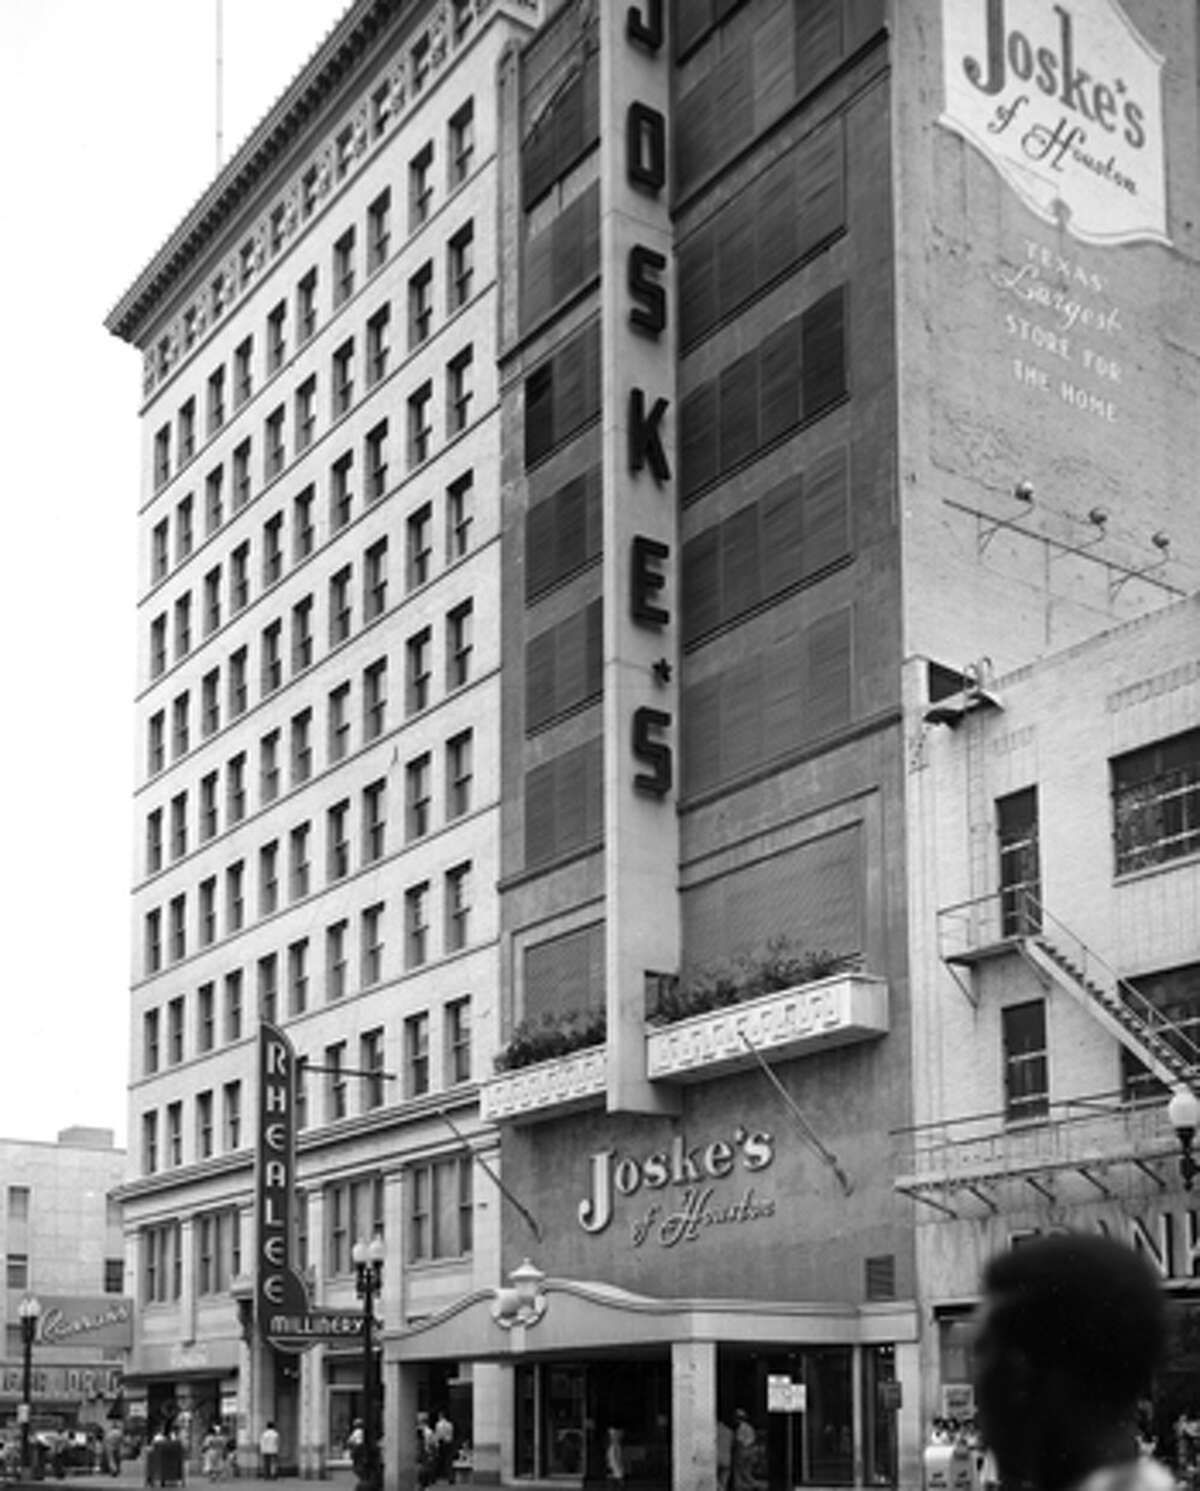 1953: Joske's store at 407 Main in downtown Houston. This store, the chain's first in Houston, opened in October 1948 and initially sold home furnishings. Previously, the site was home to Foley's. The building was eventually demolished.